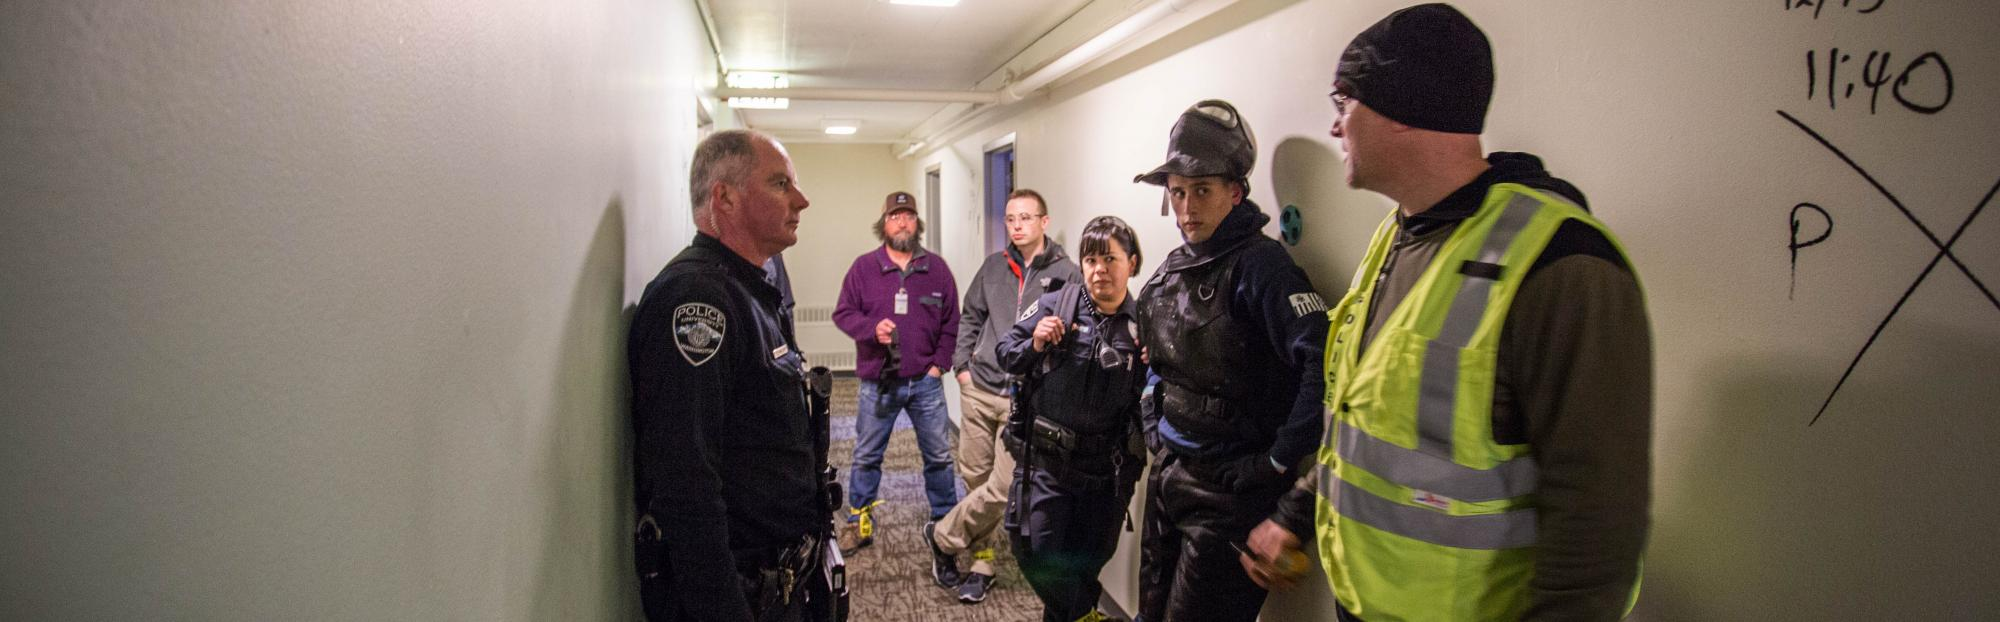 UWPD officers and volunteers debrief after an active shooter training exercise in the empty McCarty Hall.